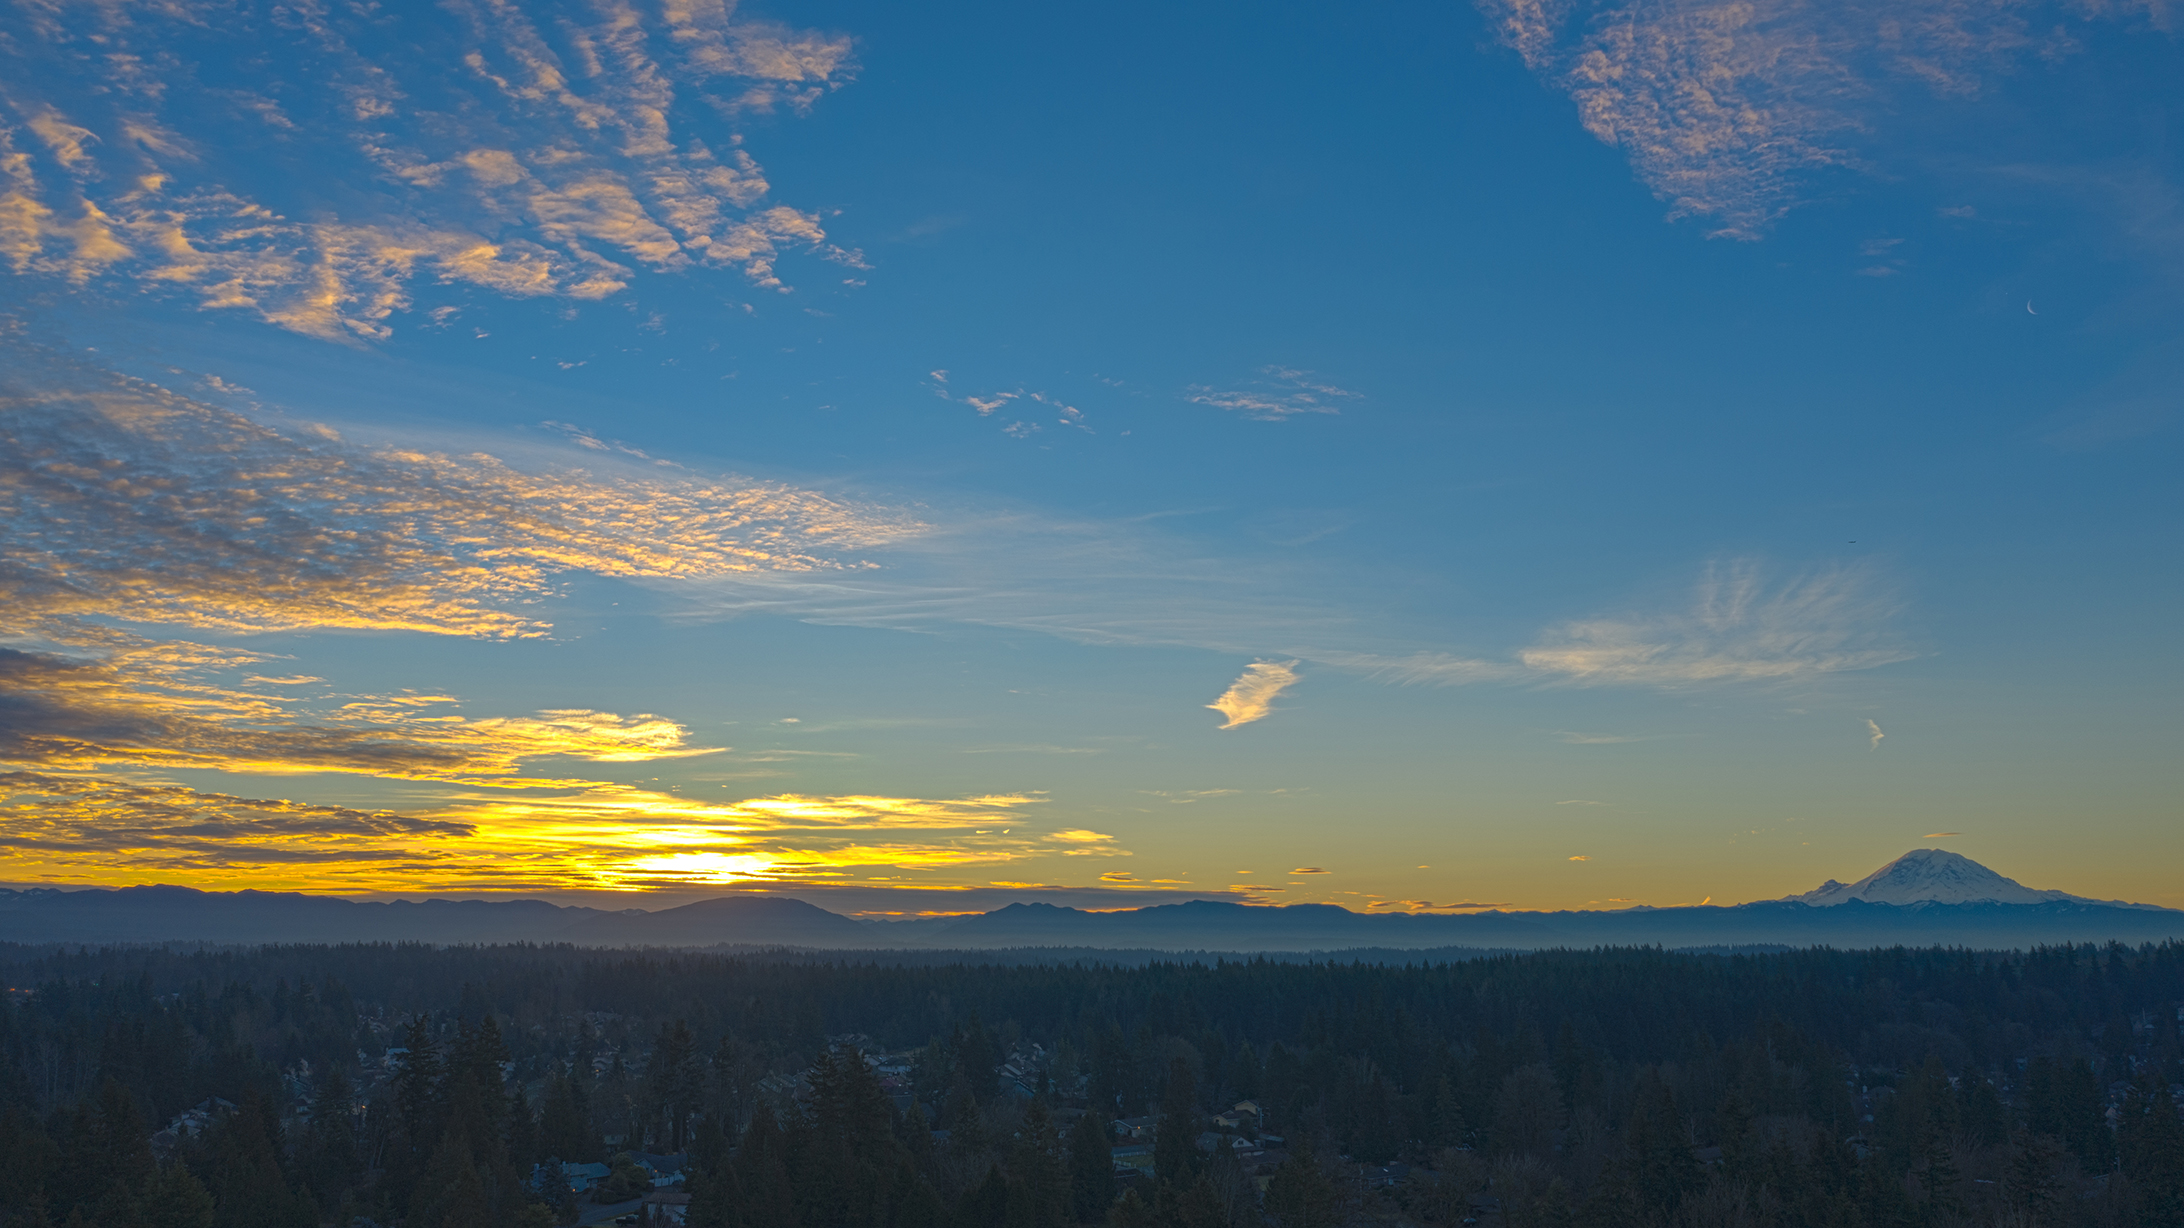 01_31_2019_Fairwood_Sunrise_HDR_5_SMALL.jpg